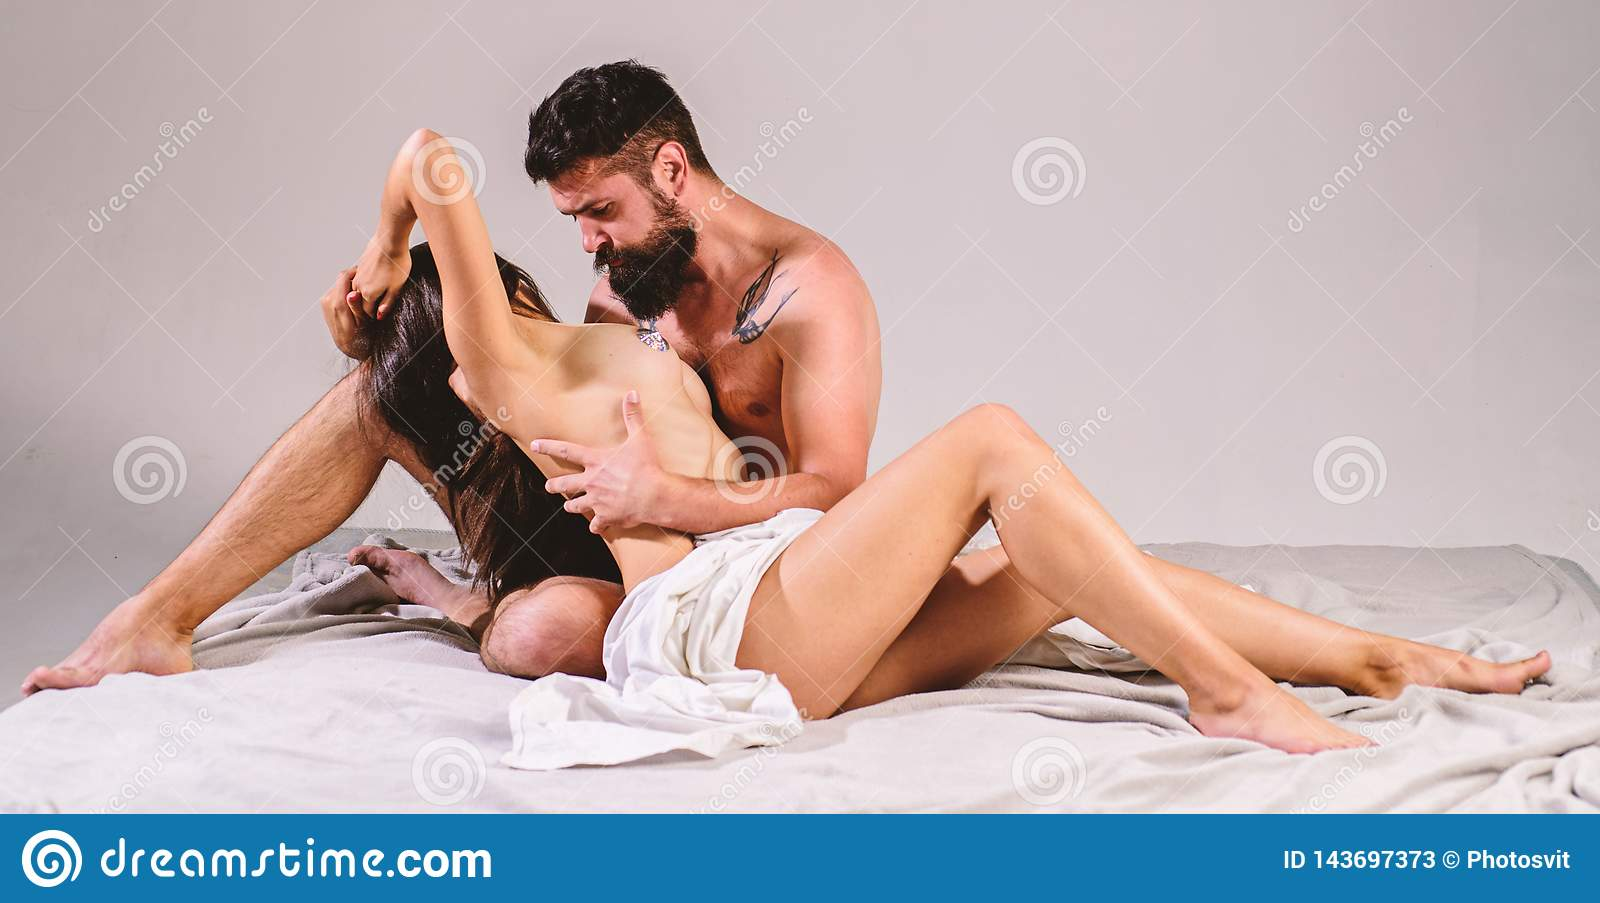 Girl touch man naked